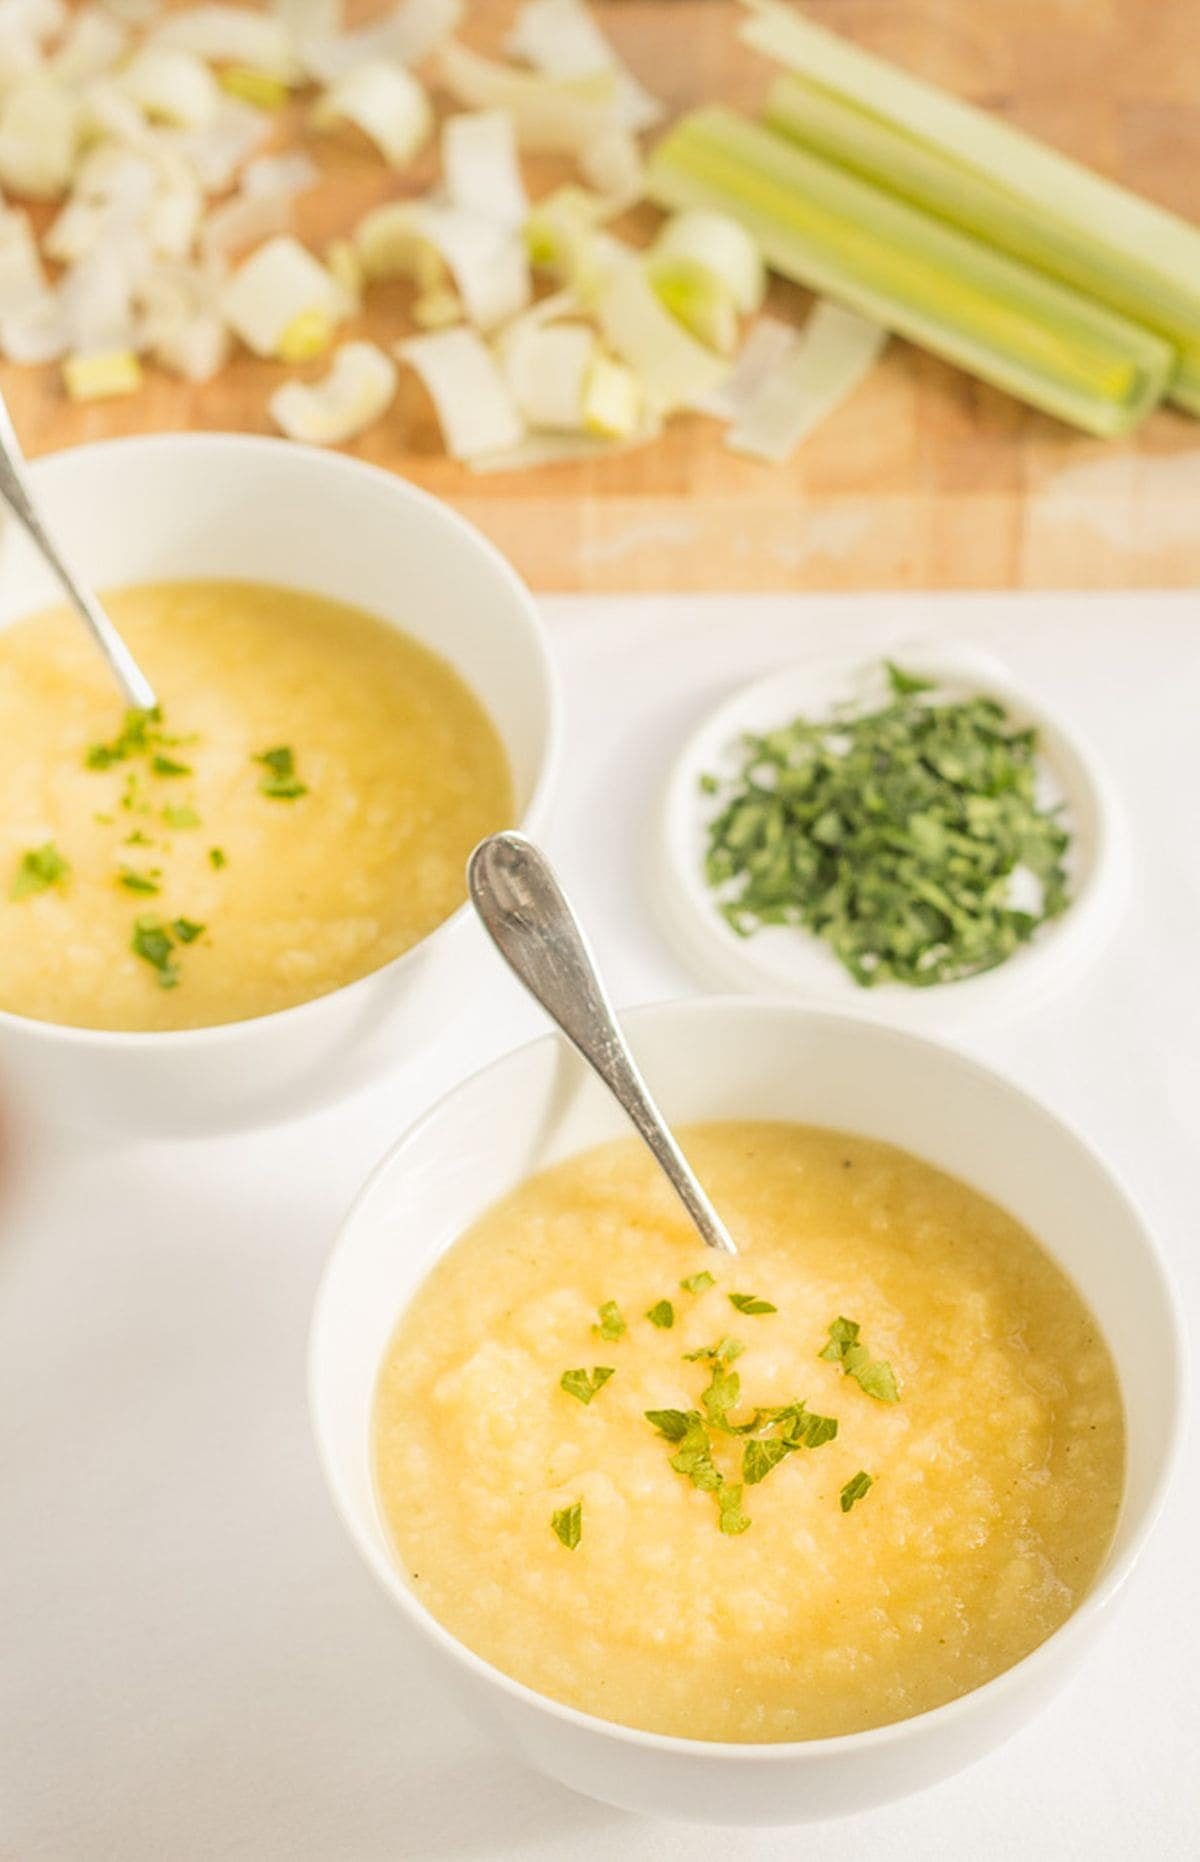 Two bowls of Scottish leek and potato soup diagonally across from each other with spoons in. Assortment of chopped vegetables around the top of the bowls.